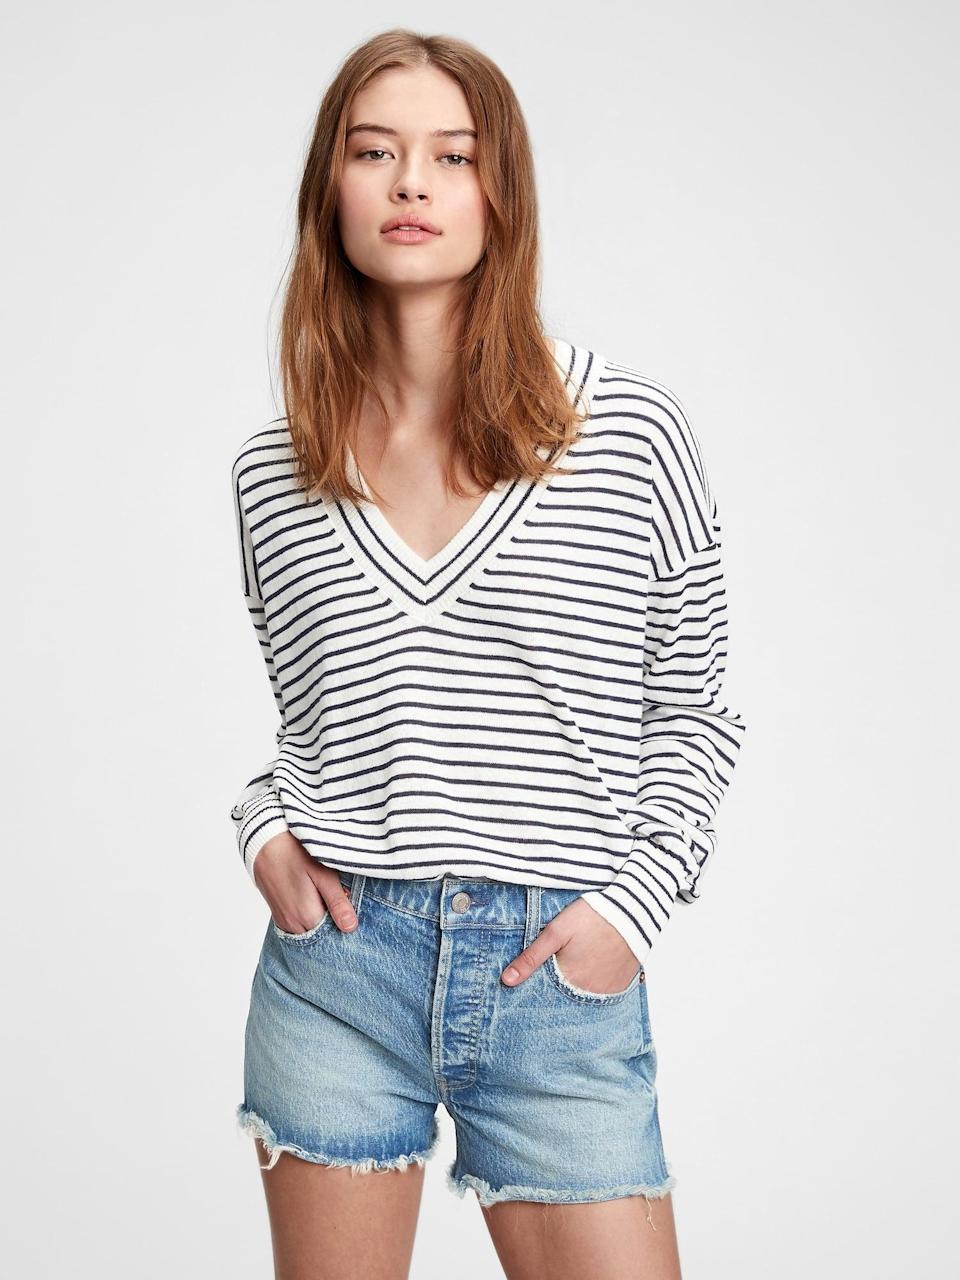 <p>It doesn't feel like spring without a navy and white striped sweater. Pair this <span>Gap Lightweight V-Neck Sweater</span> ($35, originally $60) with a pair of black capris for a chic retro look.</p>